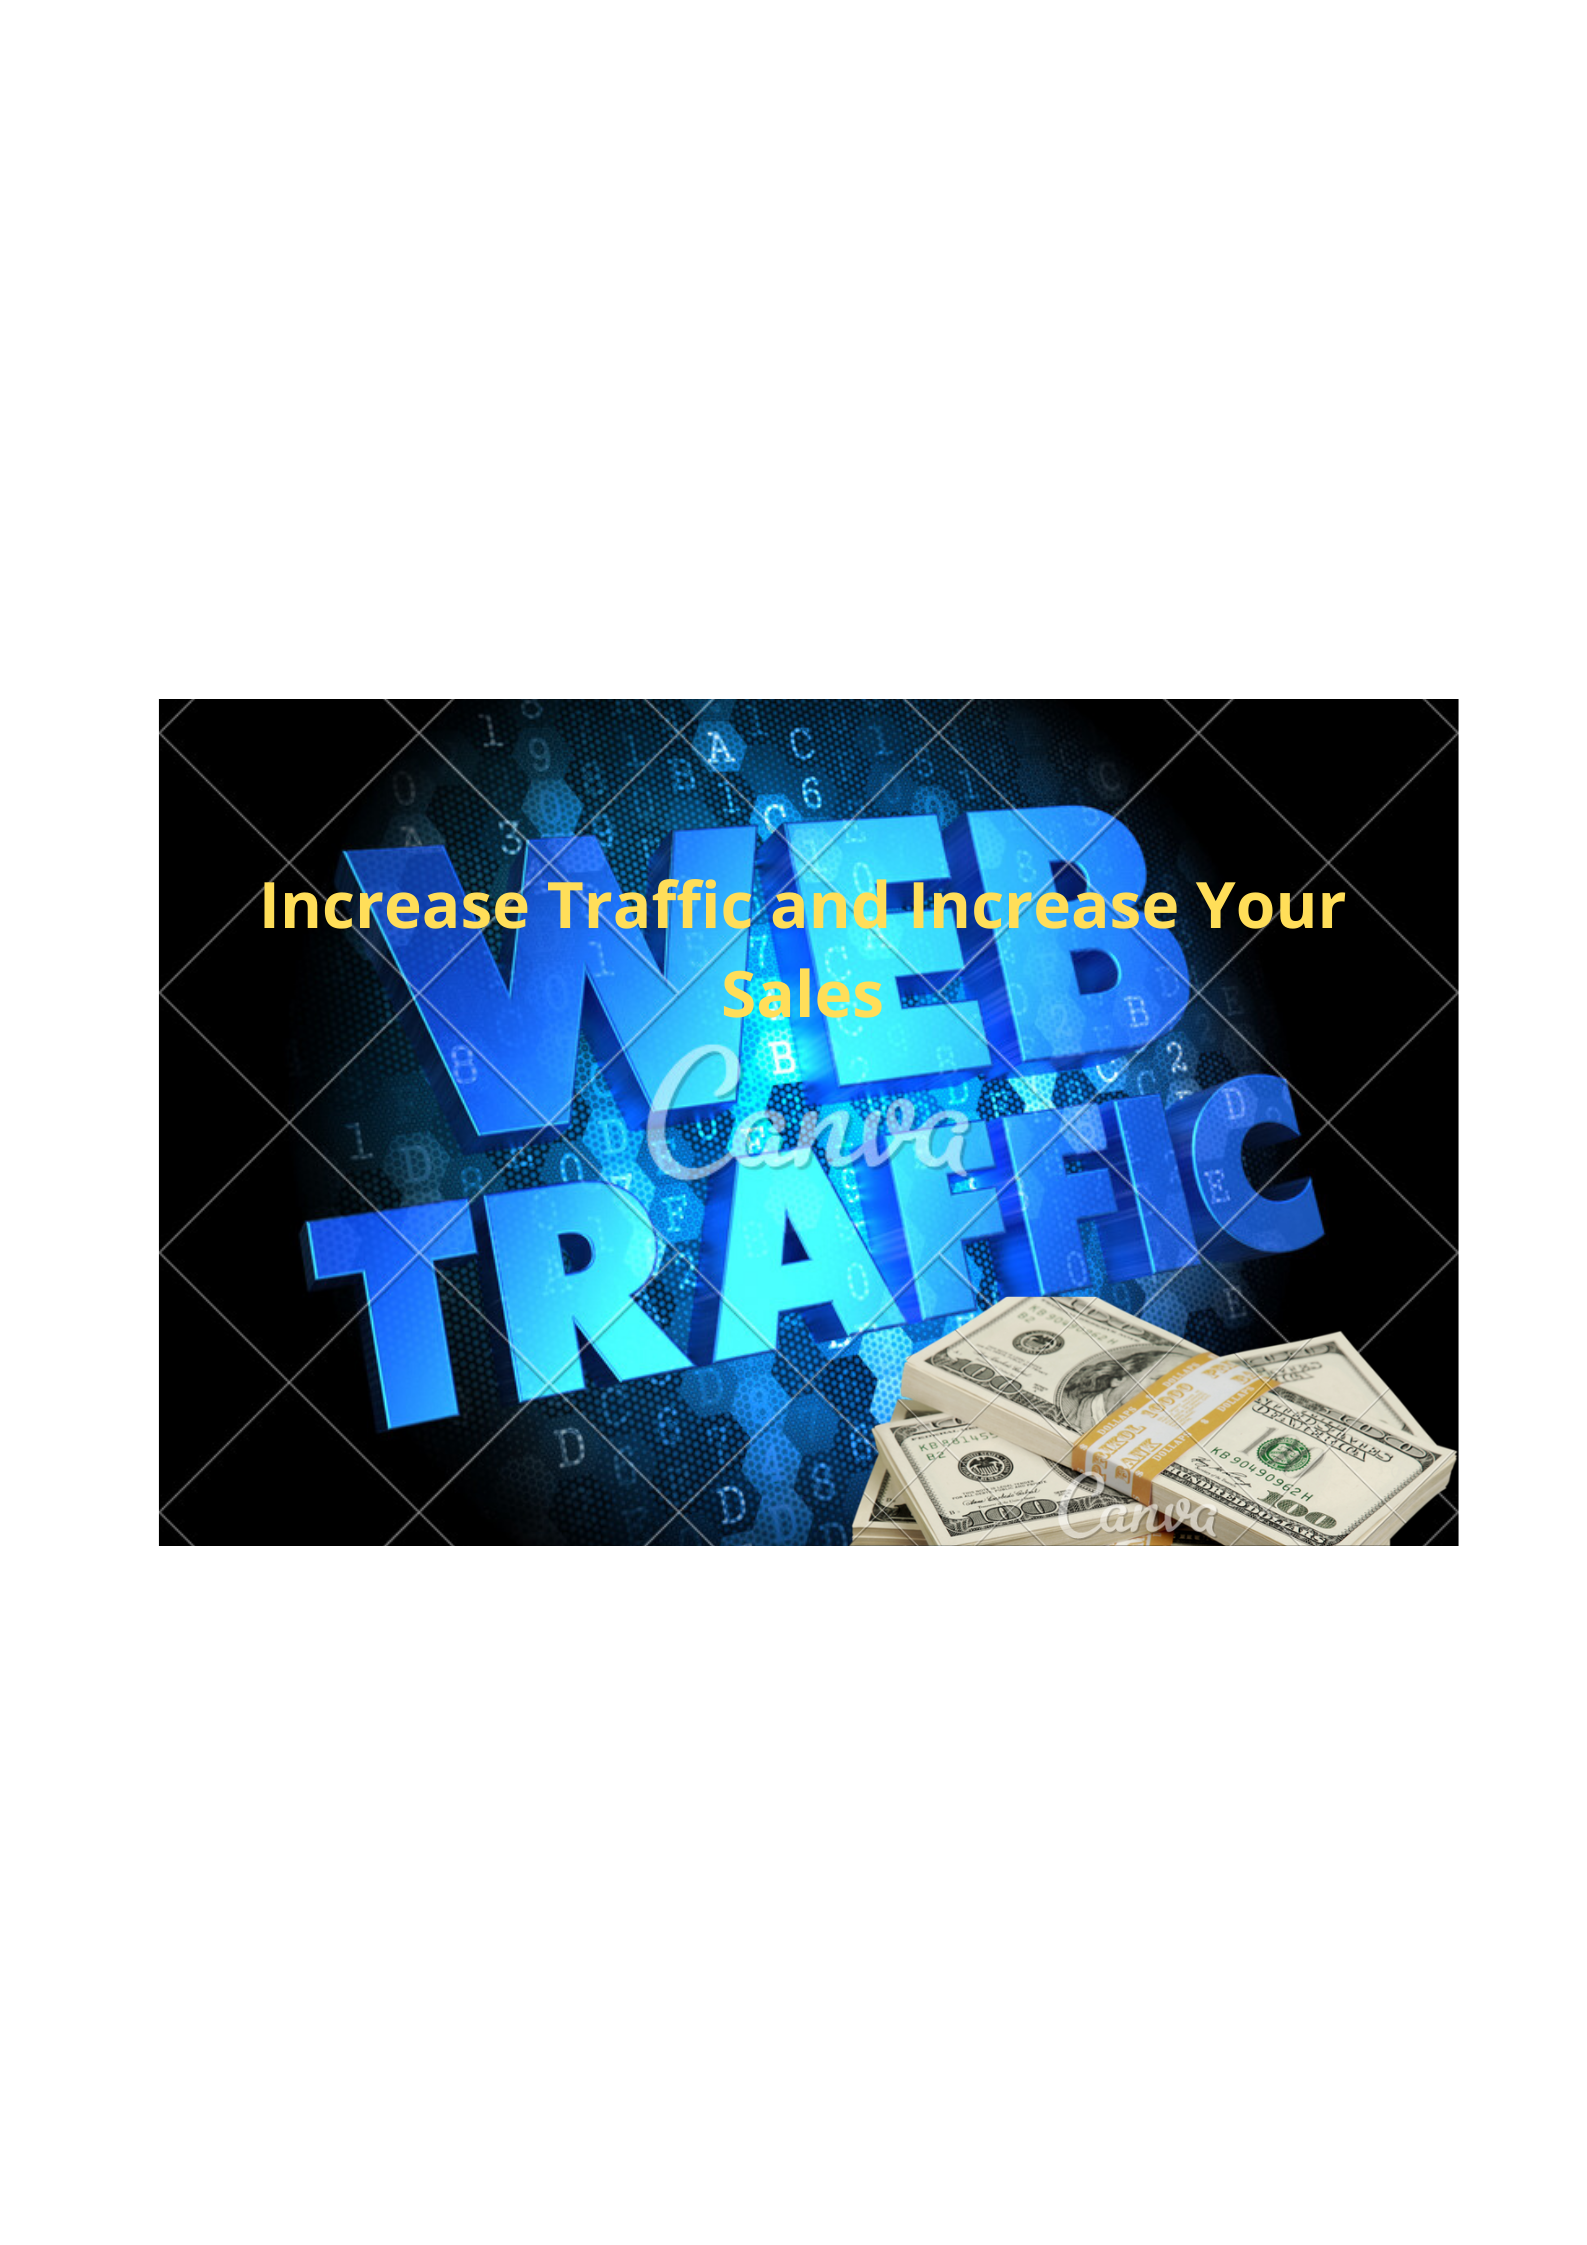 Increase Web Traffic and Increase Sales